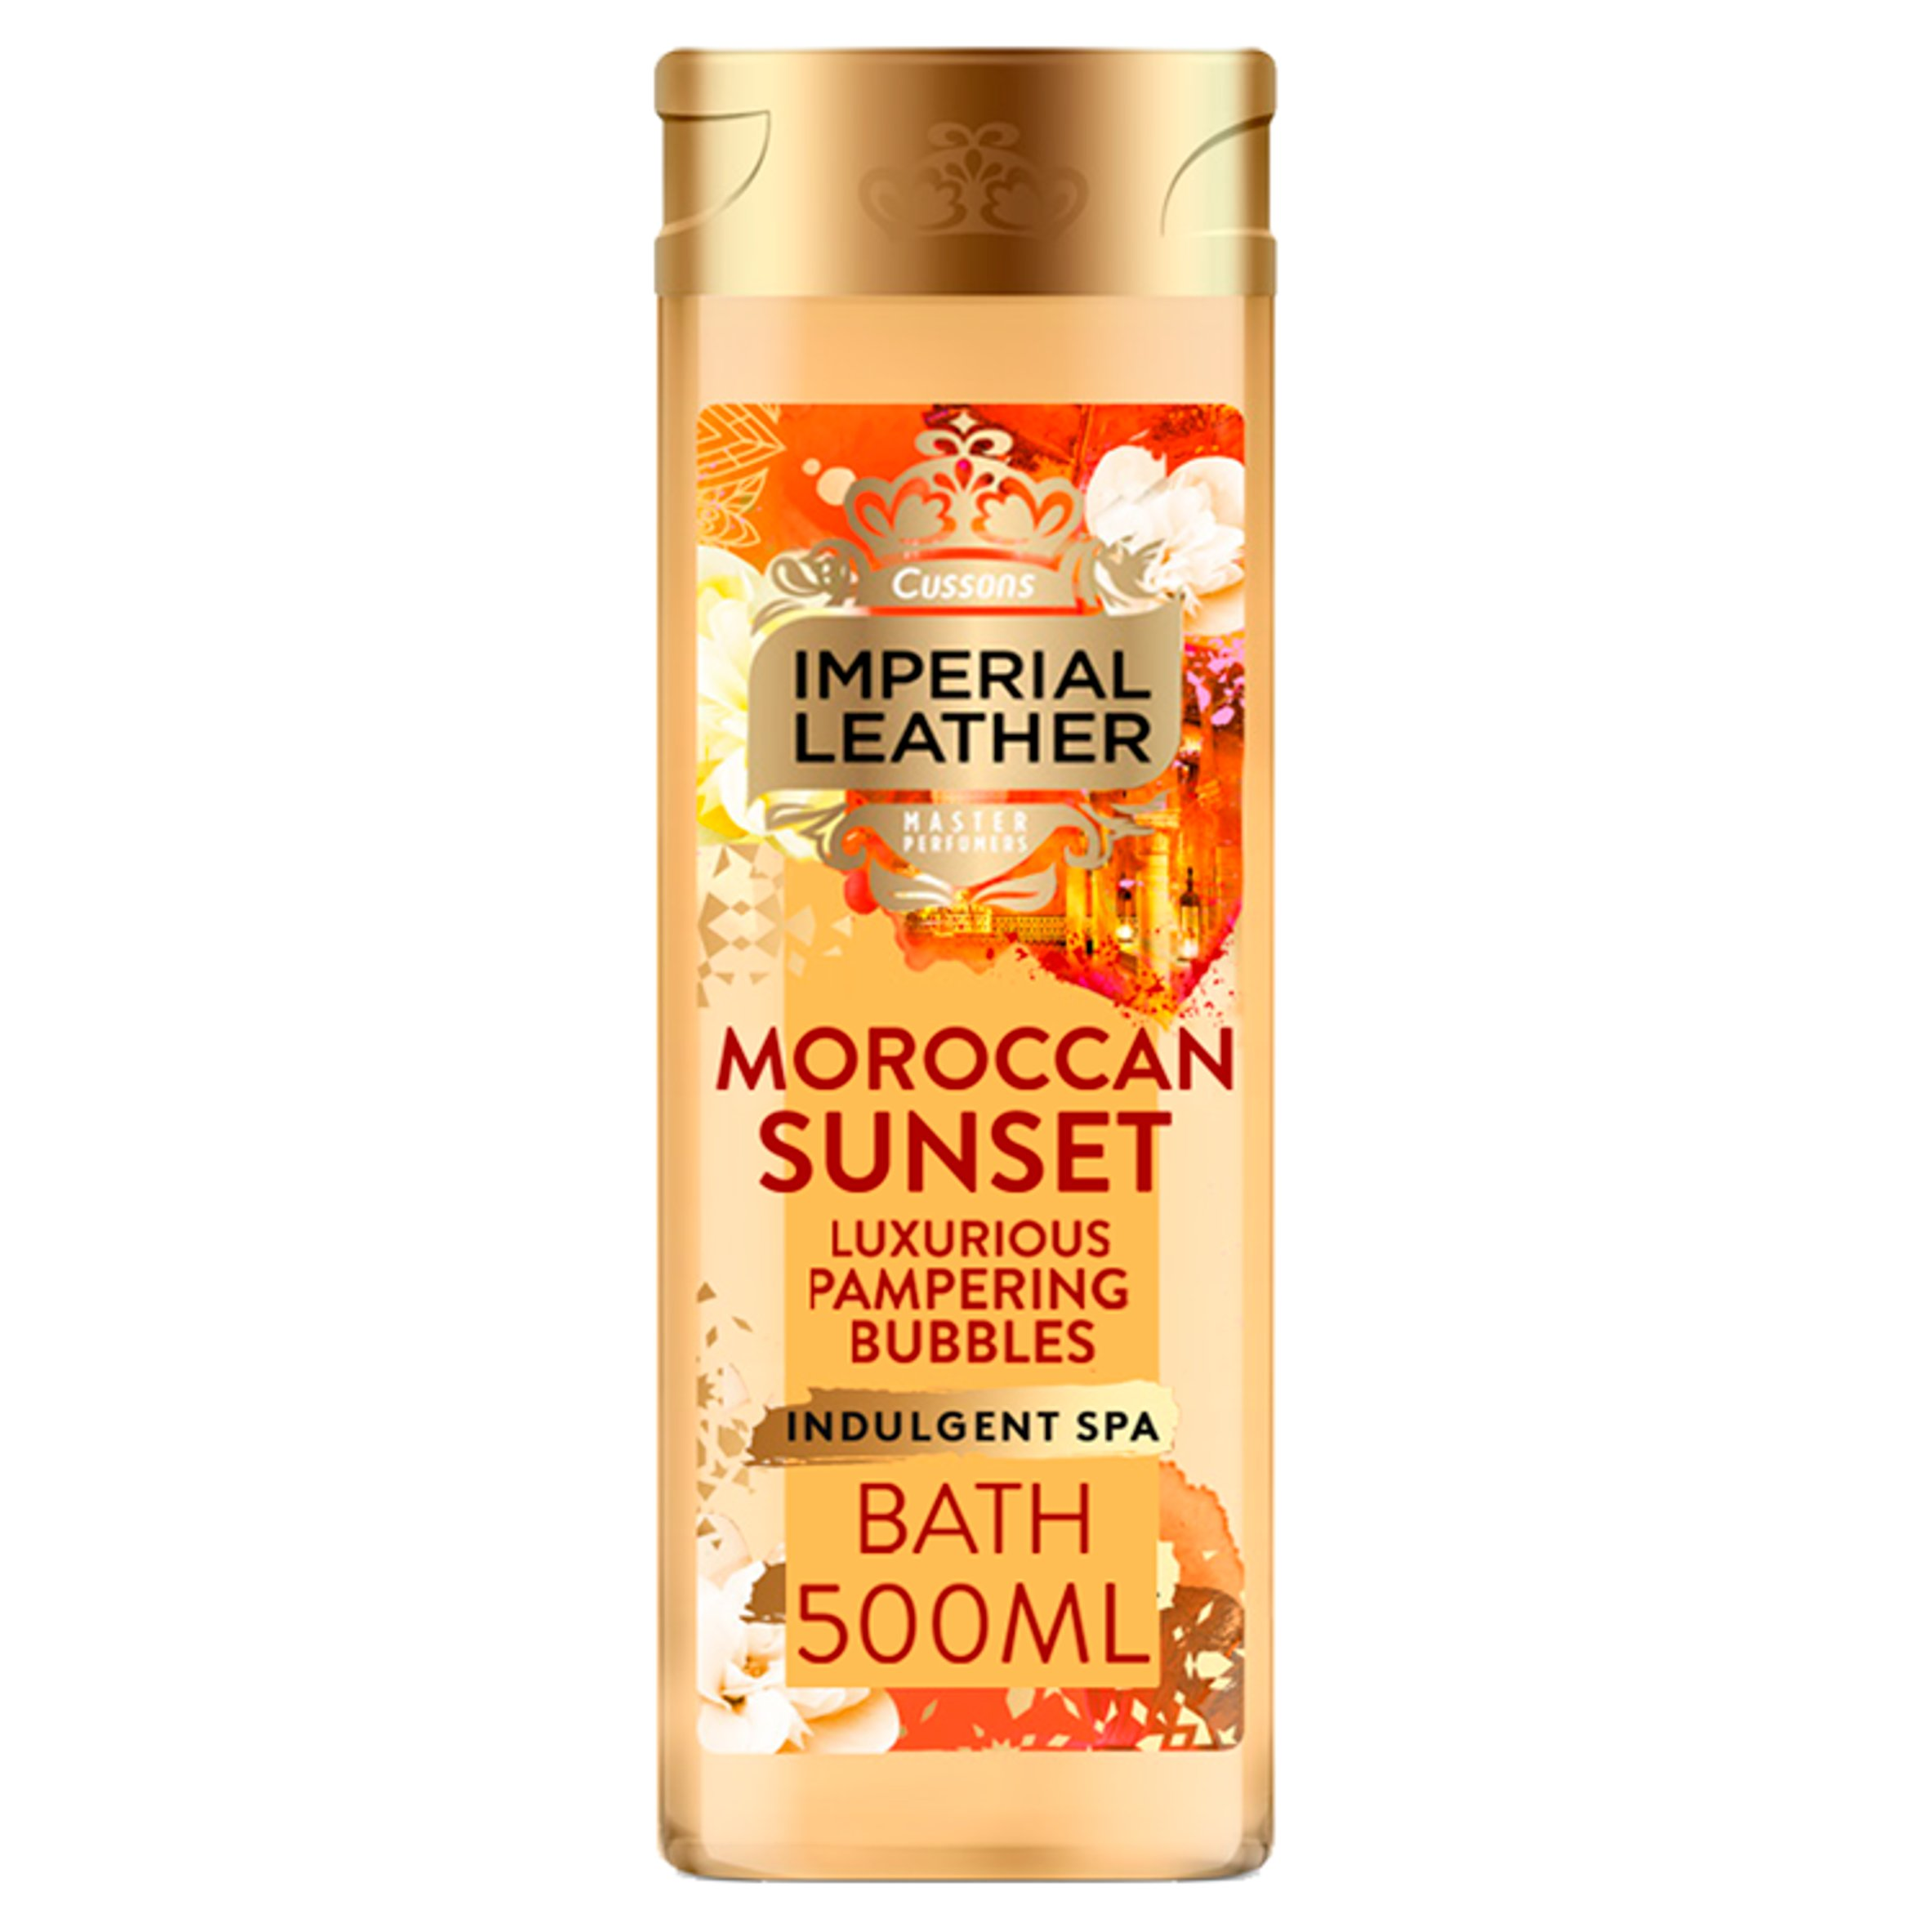 Imperial Leather Moroccan Sunset Argan Bath 500Ml